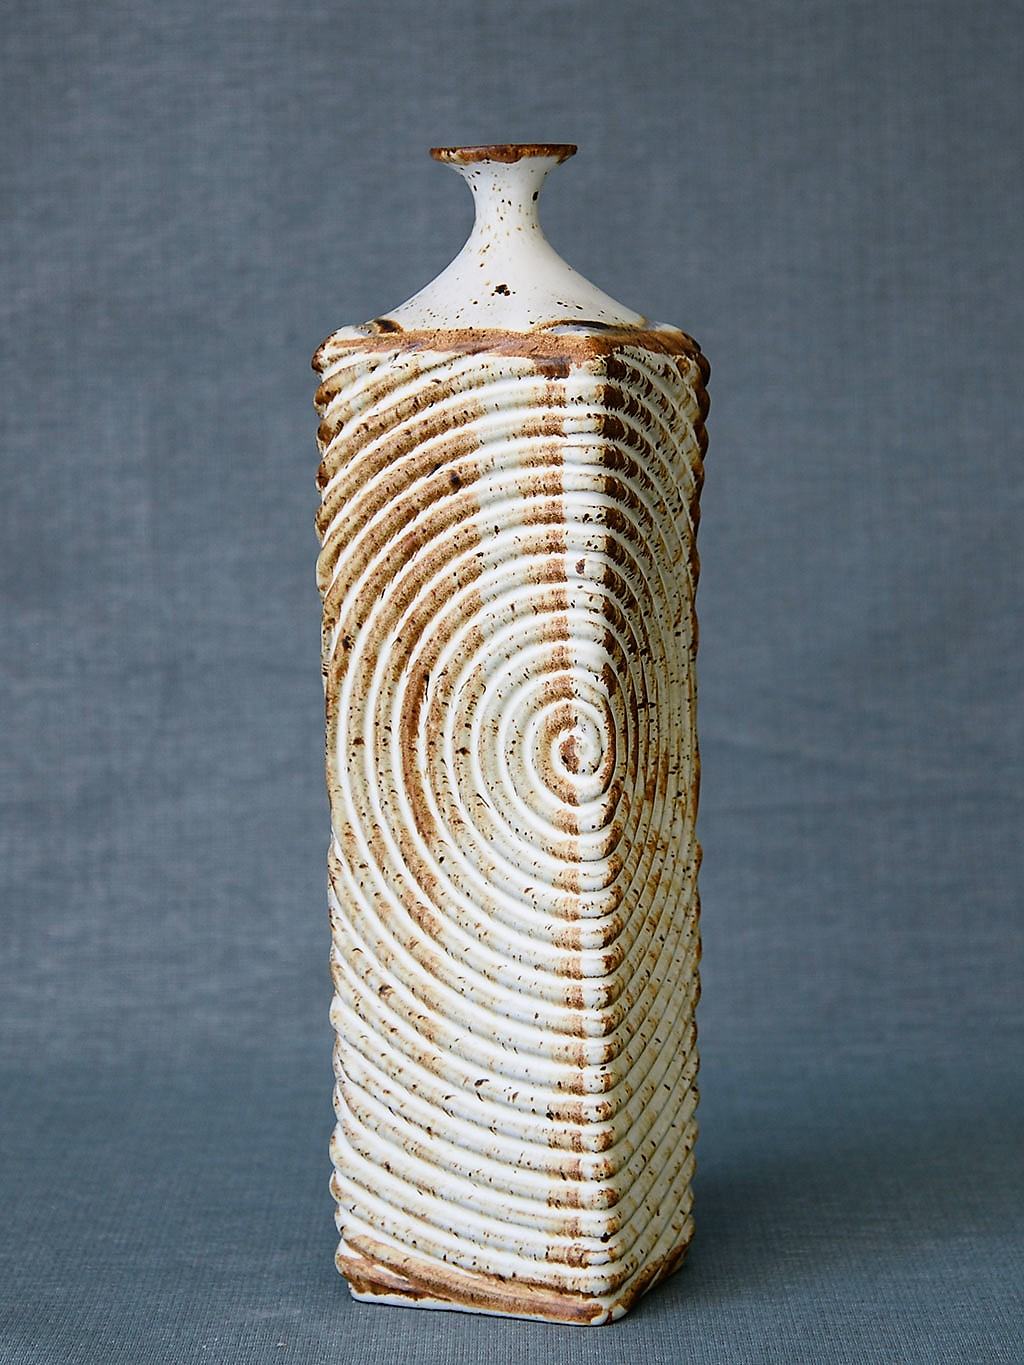 Donn Zver. 1971. Spiral Vase. Art Gallery of Burlington Collection.